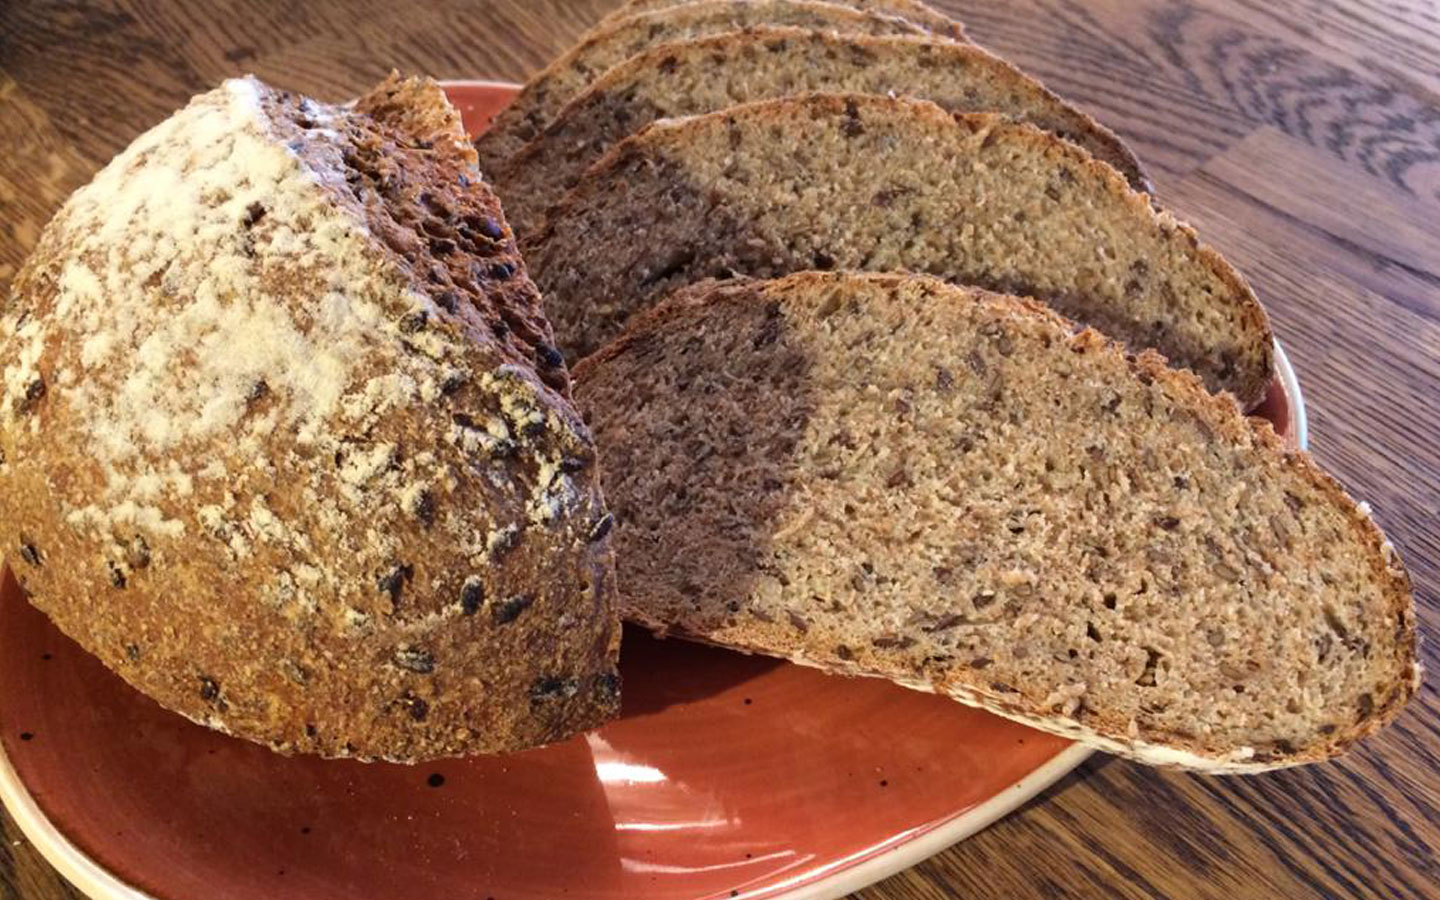 Freshly baked and sliced wholemeal sourdough bread